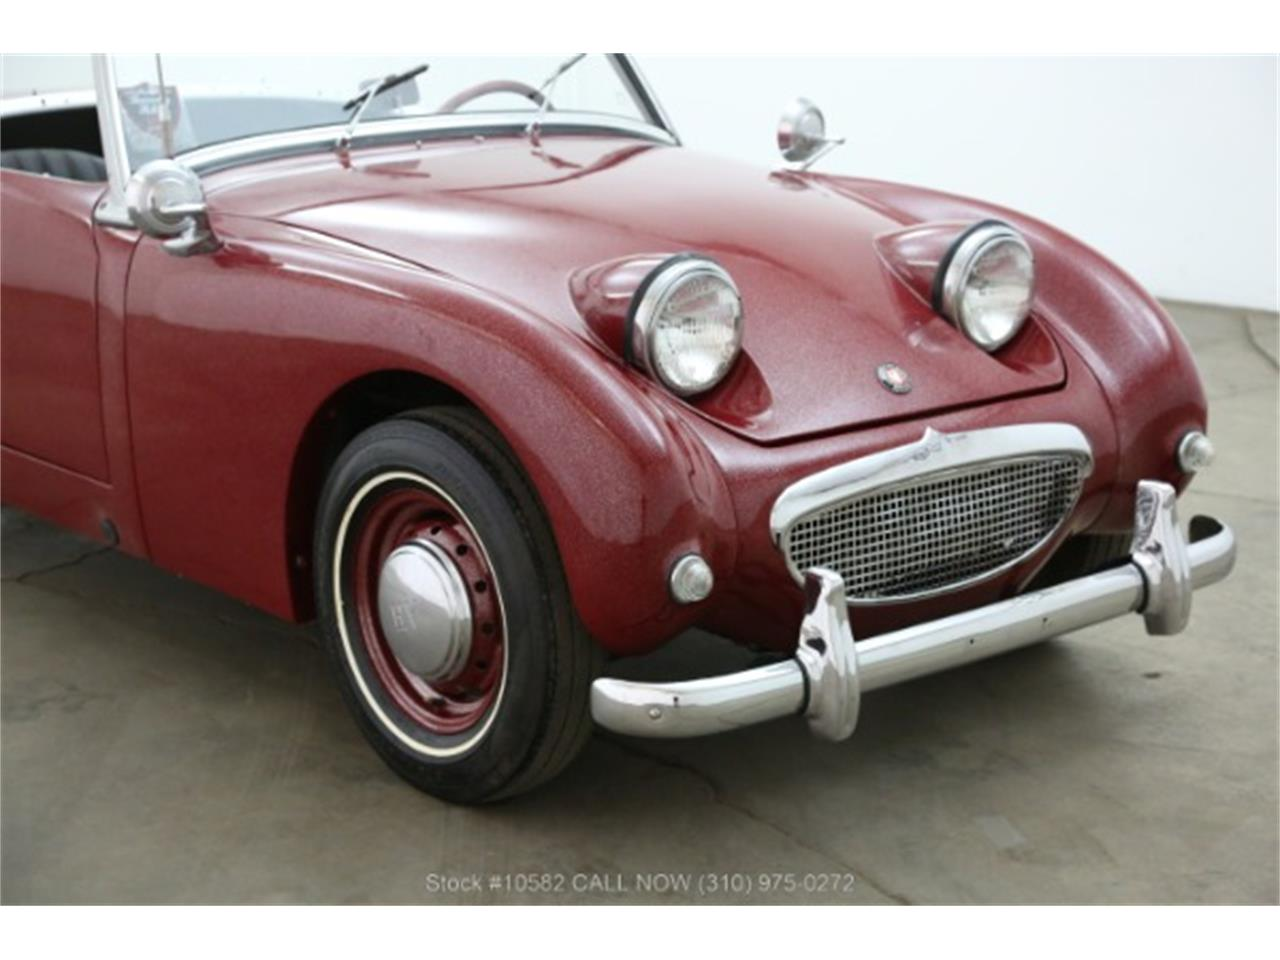 Large Picture of Classic 1960 Bugeye Sprite located in California - $9,750.00 - PKL4